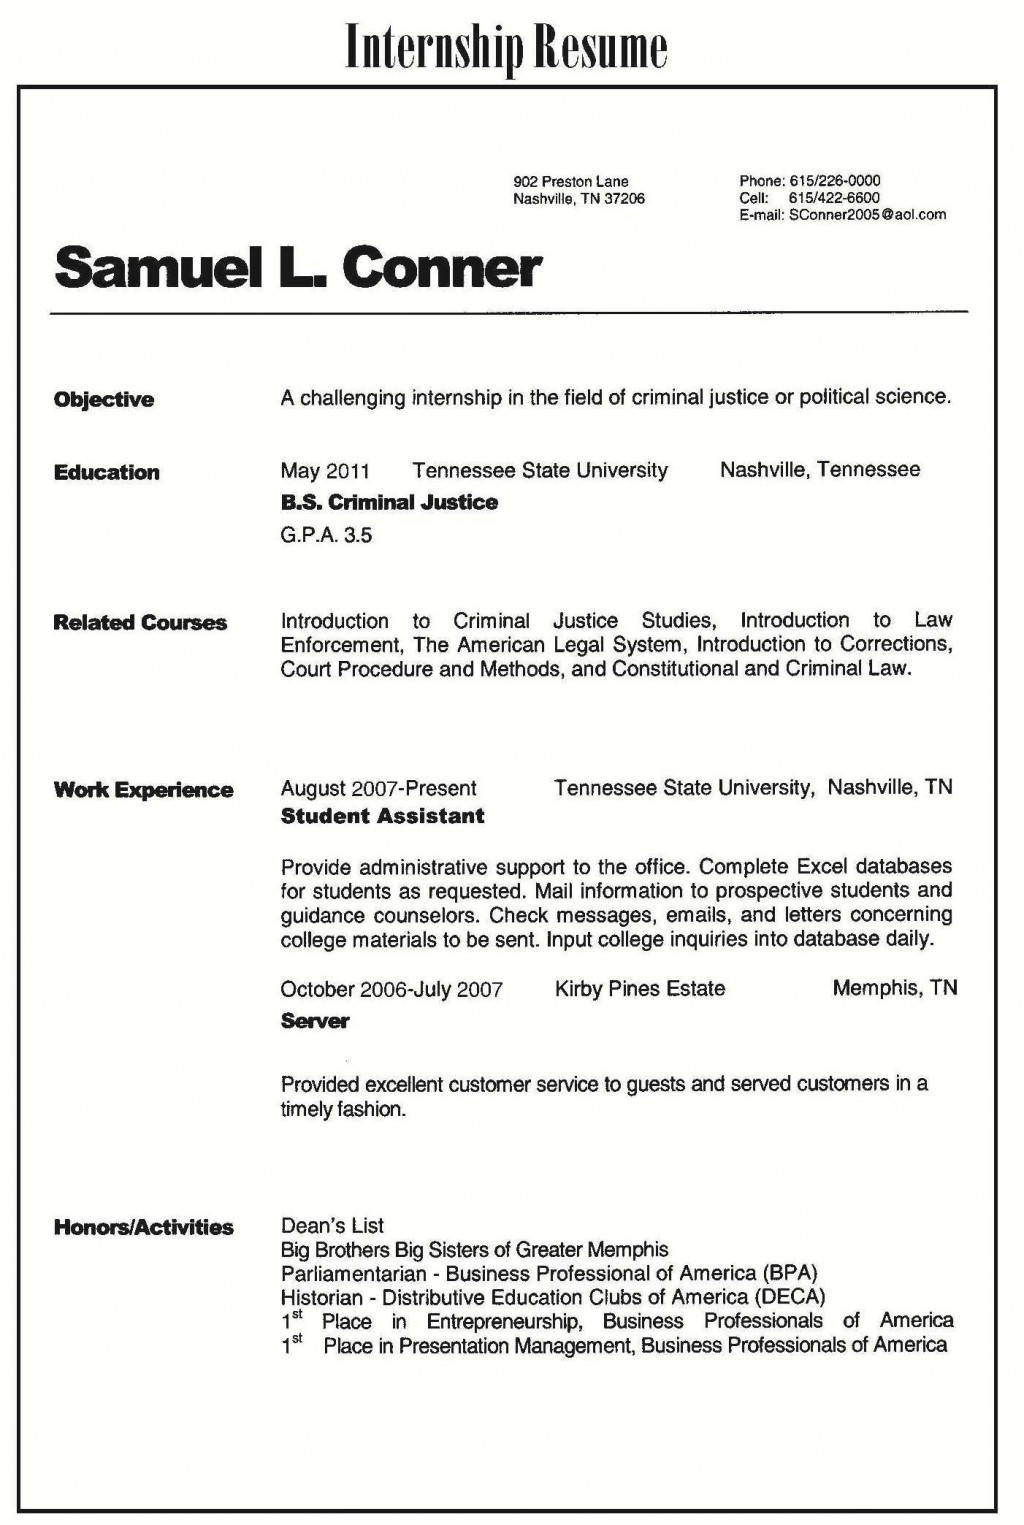 027 Write My Essay For Me Free Type Co Types Of Resumes With Resume And Resume03 Formidable College Online Uk Large